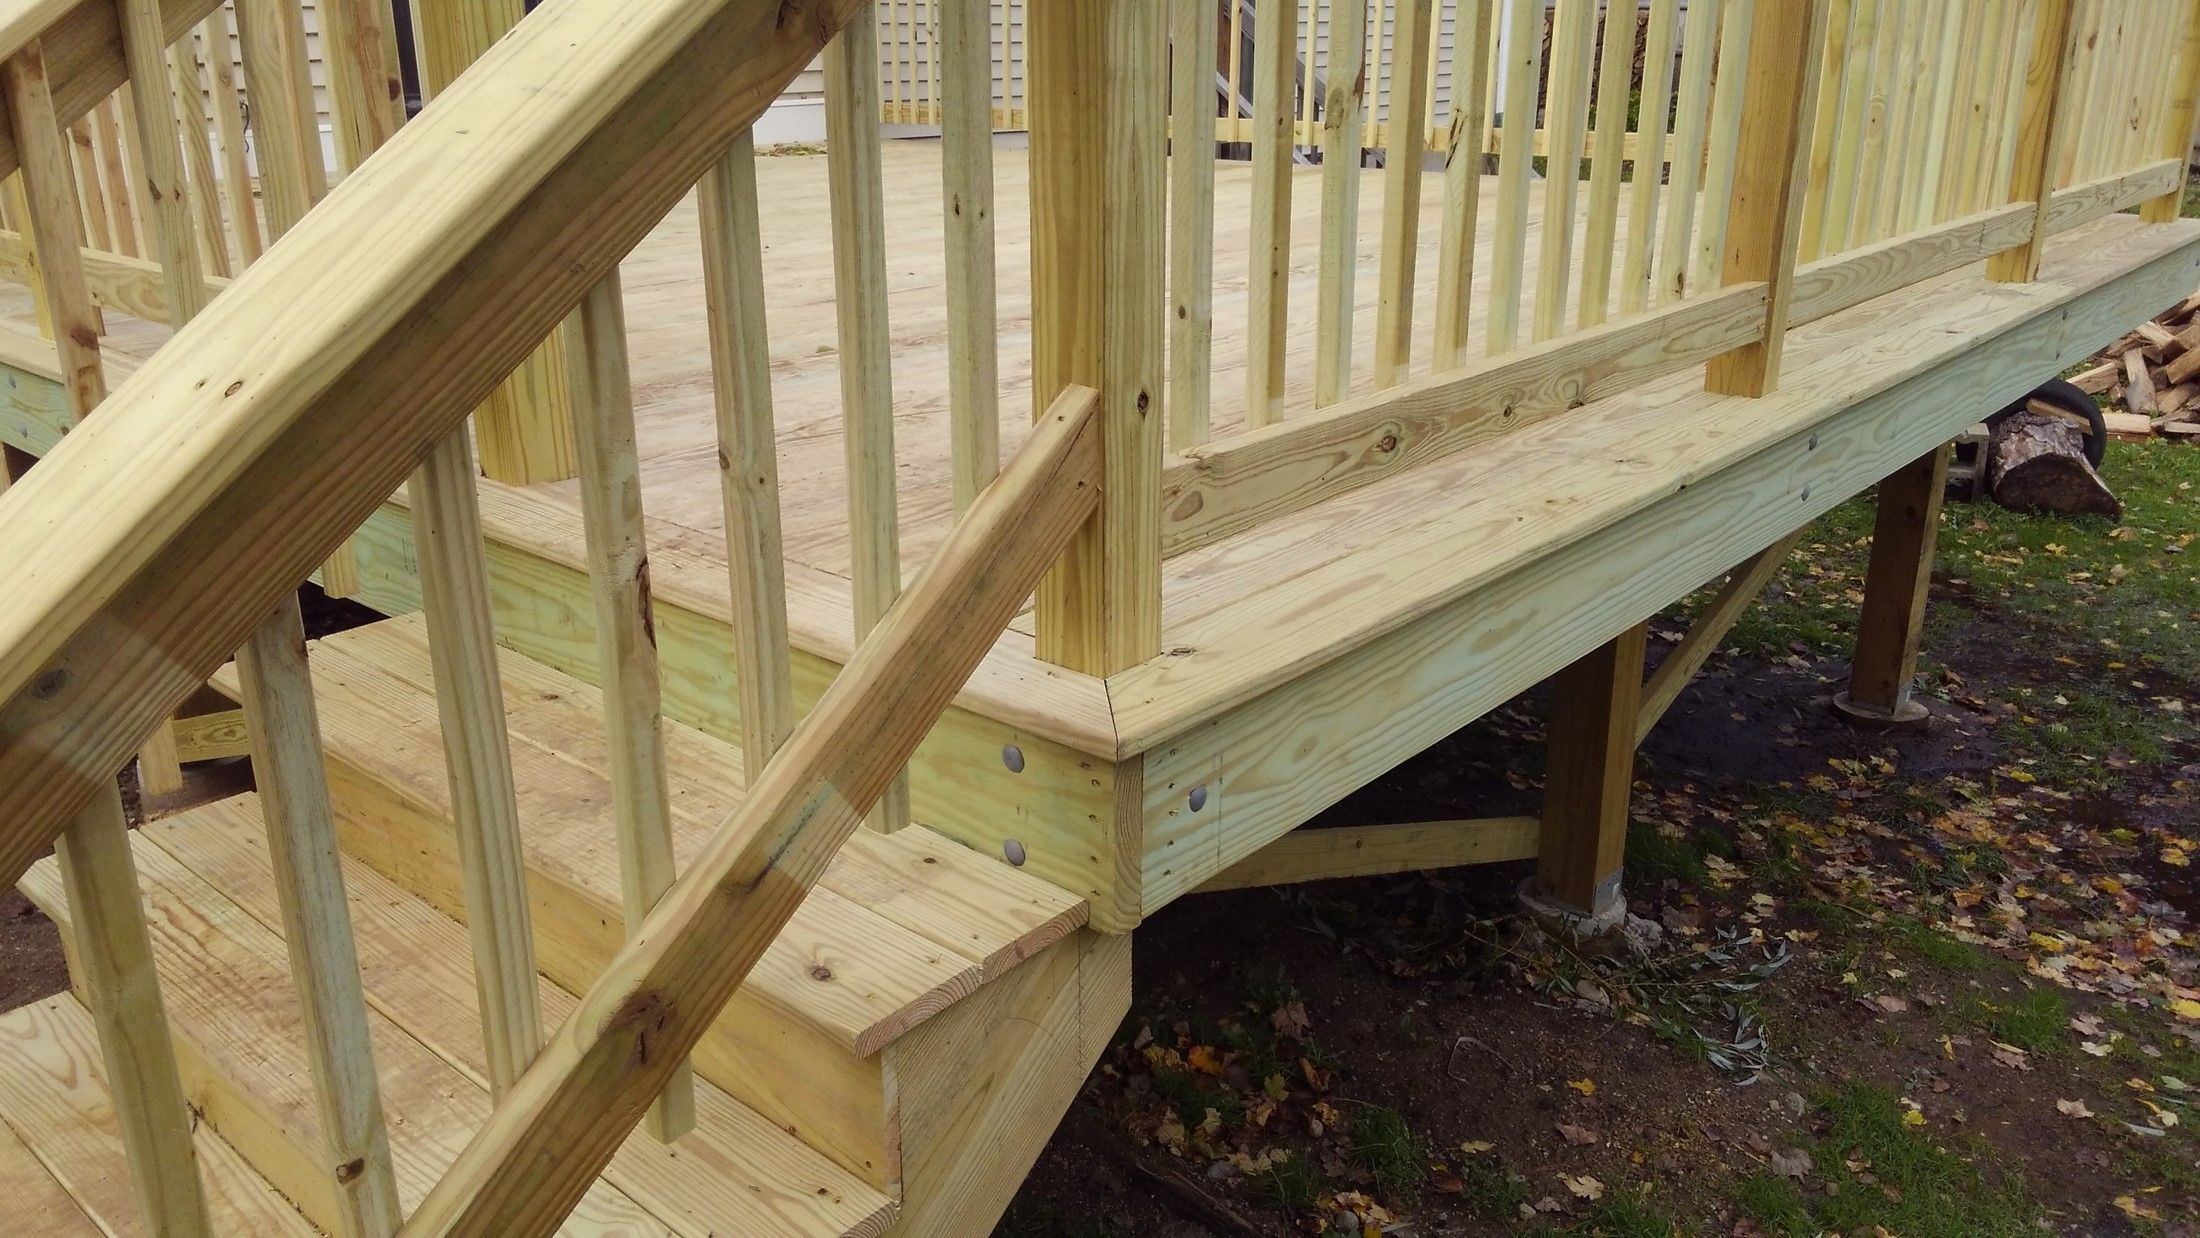 New Pressure Treated Deck Picture 7694 Decks Com | Pressure Treated Deck Stairs | Flared | 5 Foot | Landing | Pre Built | Simple